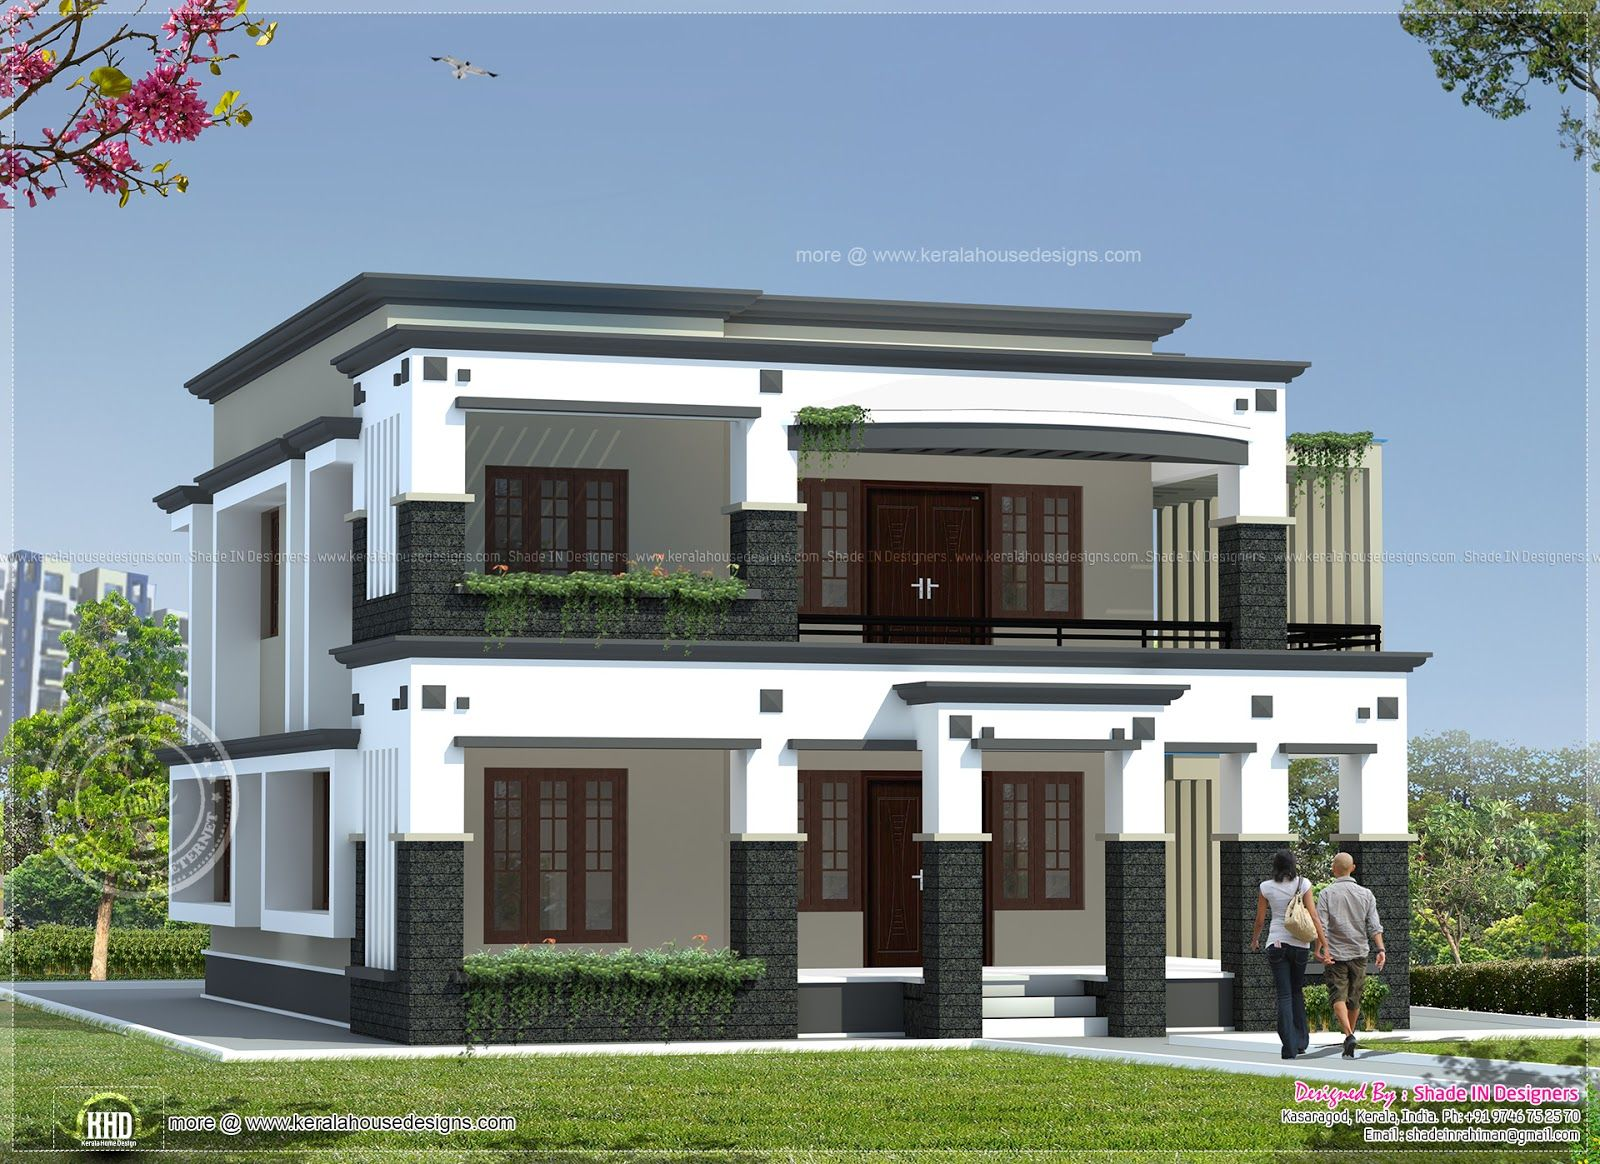 Elevations Of Single Storey Residential Buildings Google Search Residence Elevations